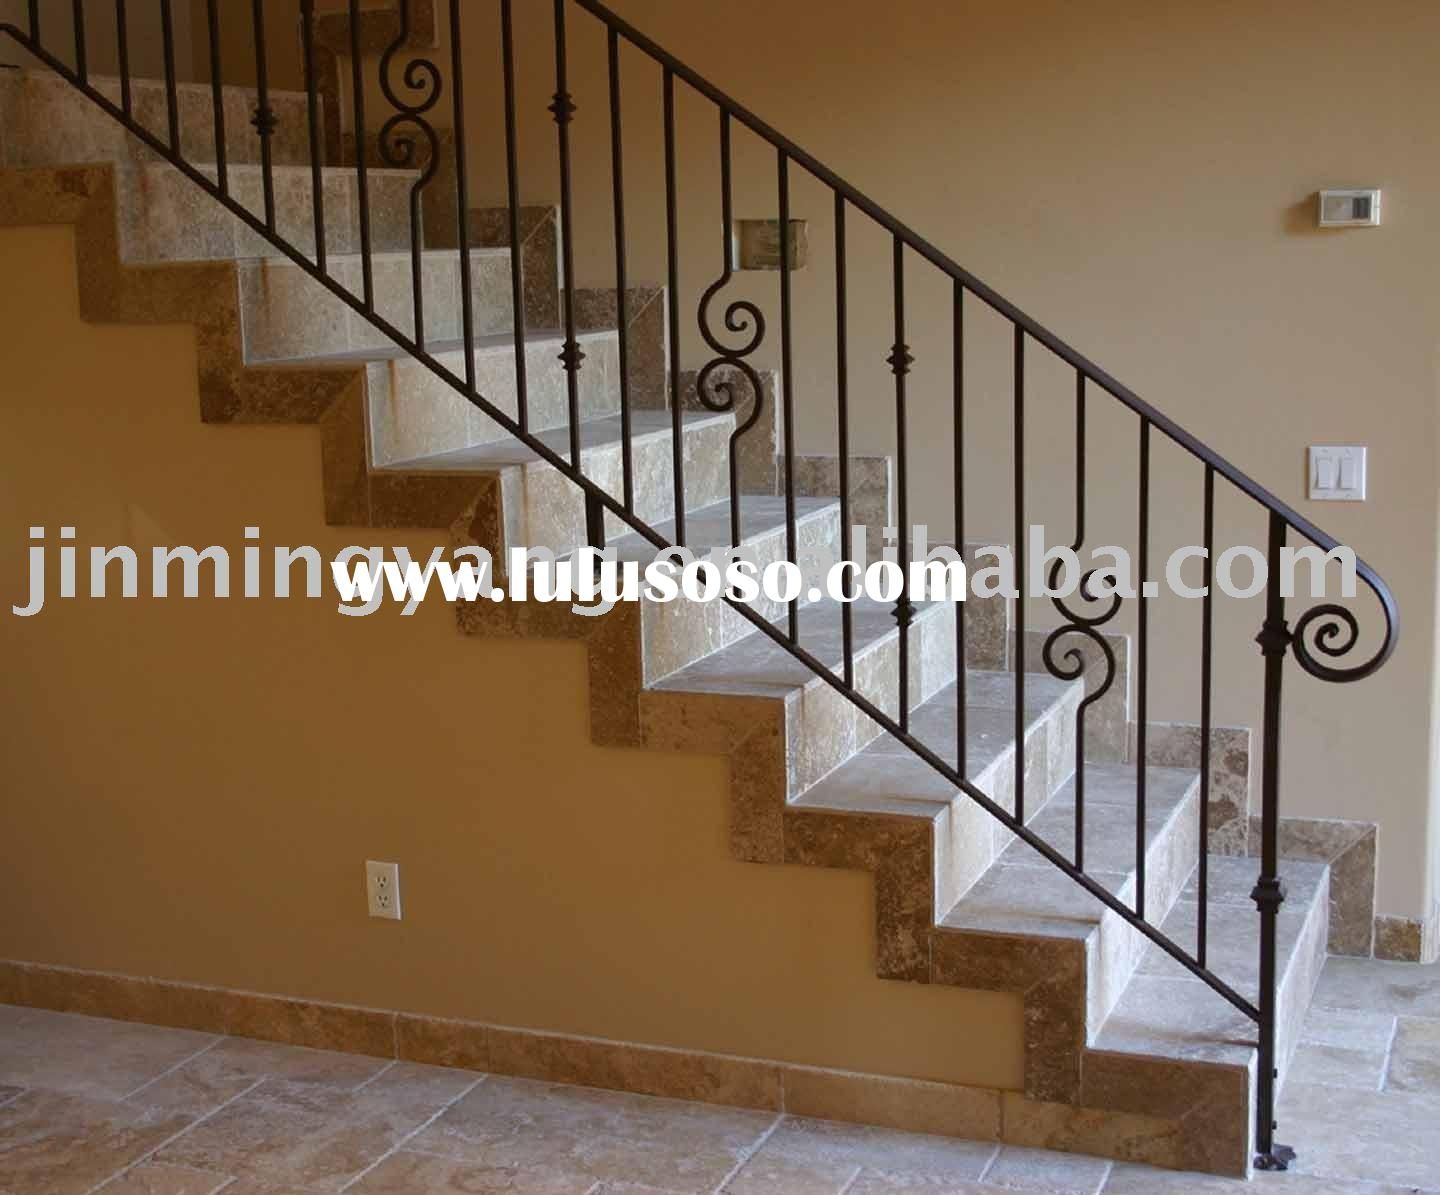 Wrought Iron Stair Handrail Metal